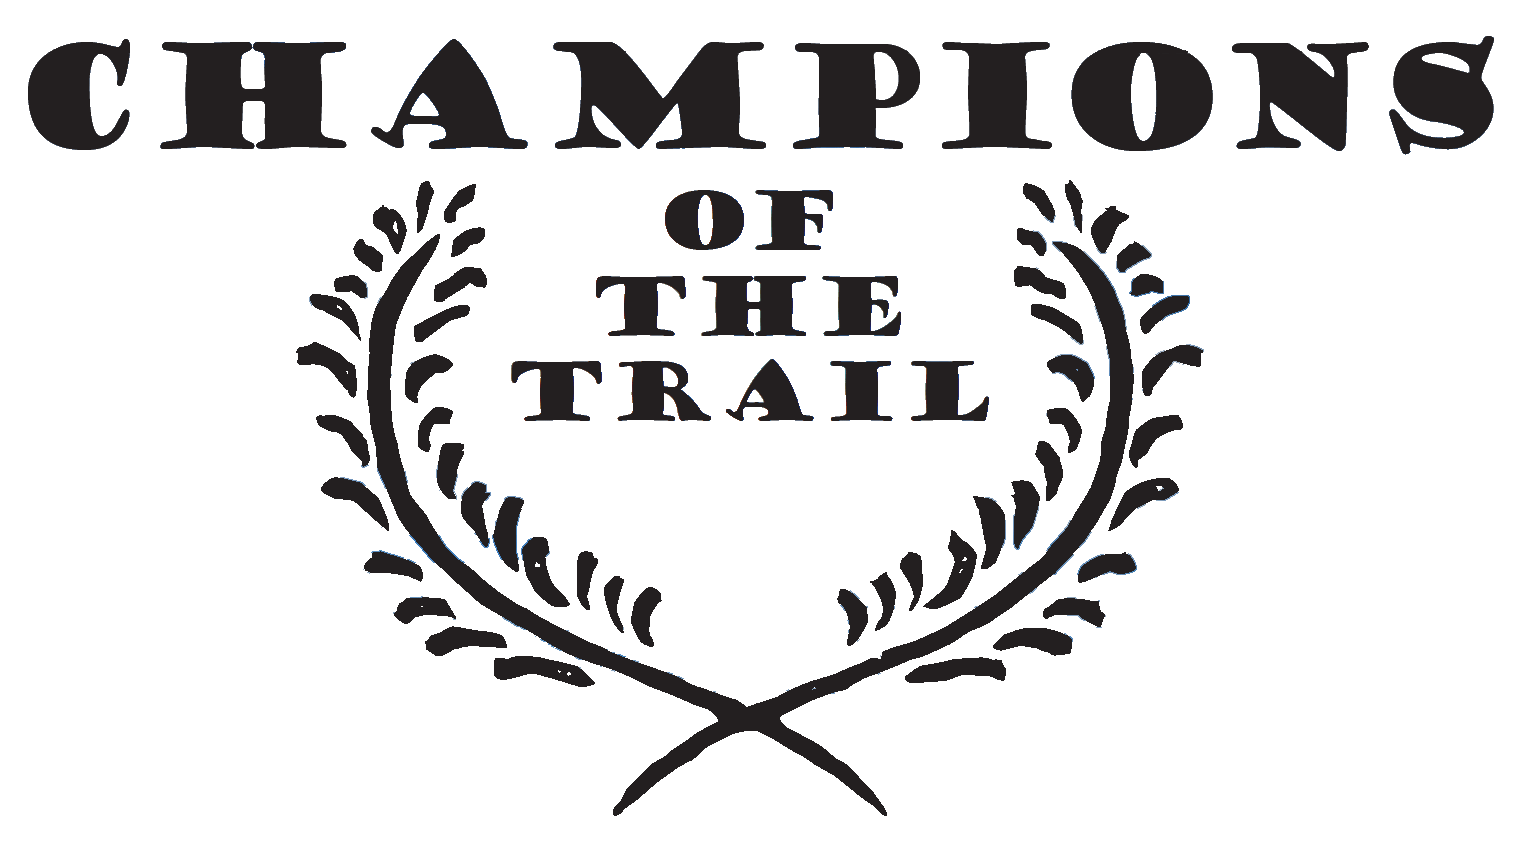 Champions of the Trail article title